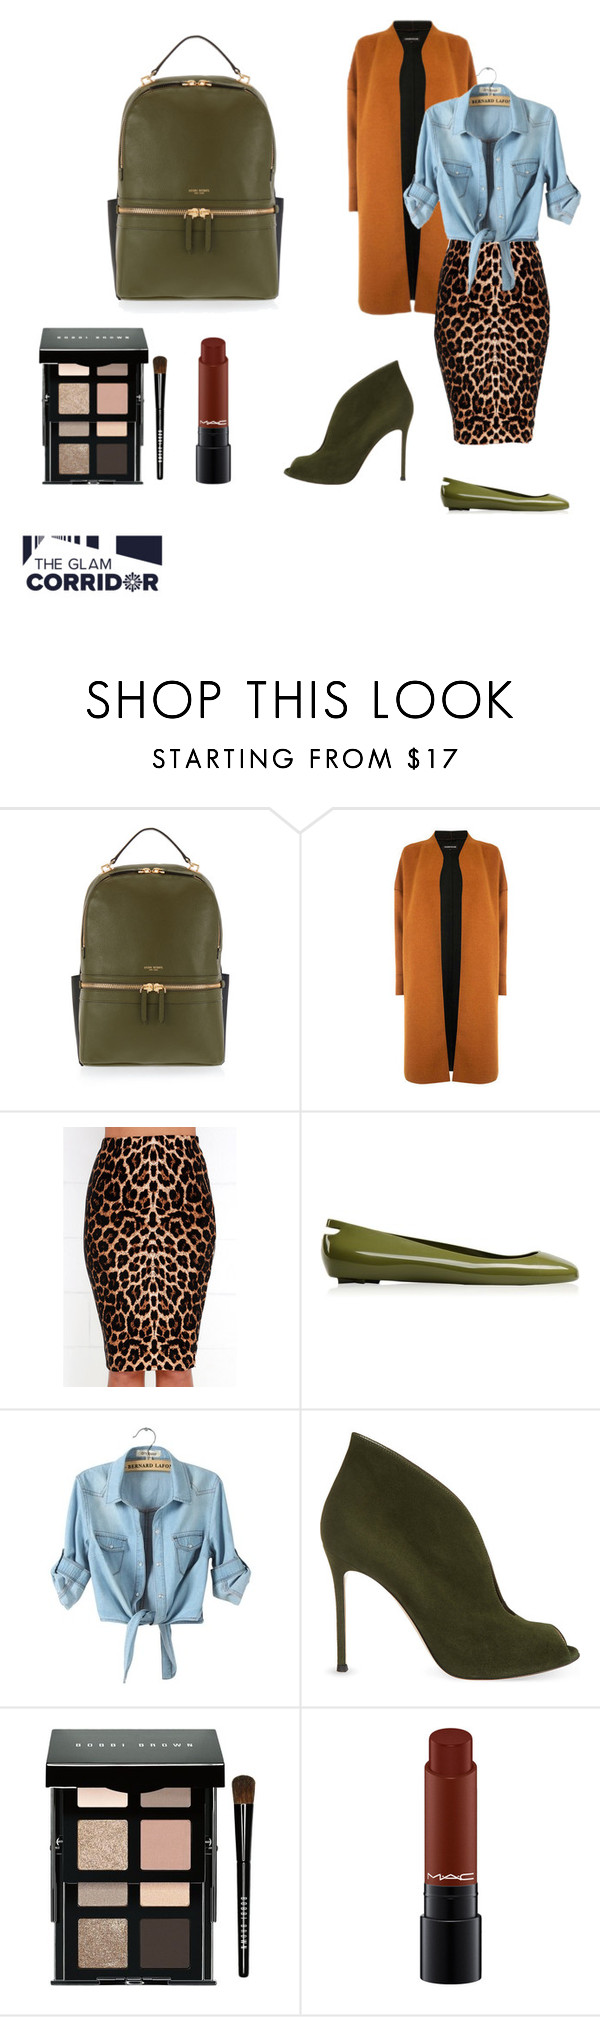 """Backpacking"" by theglamcorridor ❤ liked on Polyvore featuring Henri Bendel, Warehouse, Kartell, Gianvito Rossi and Bobbi Brown Cosmetics"